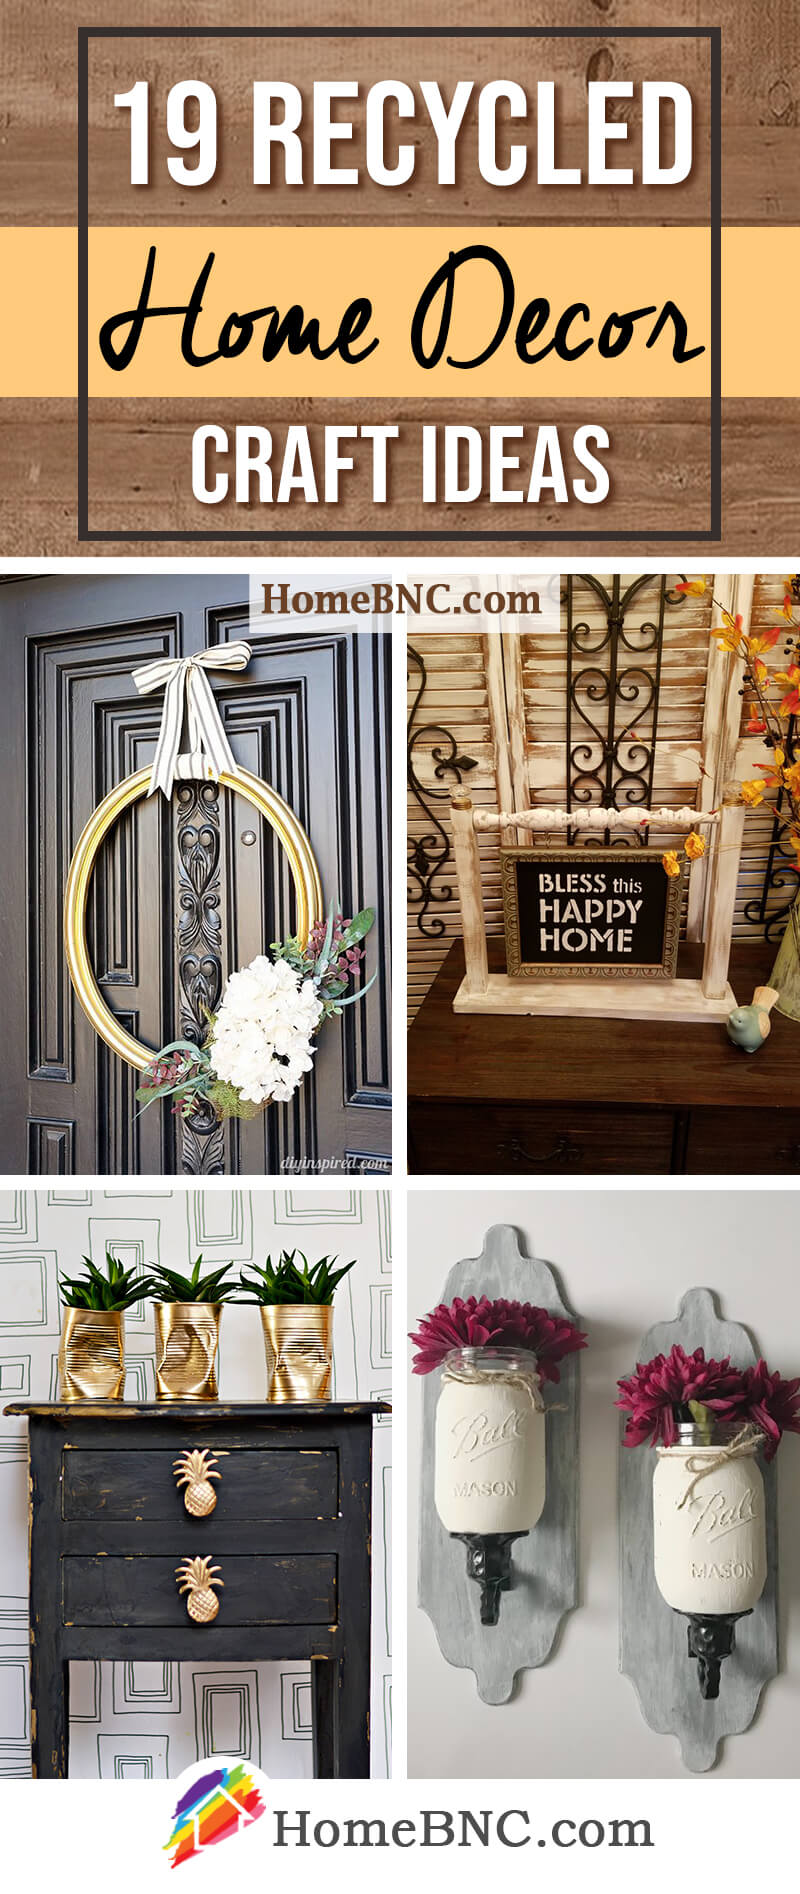 Recycled Home Decor Craft Ideas